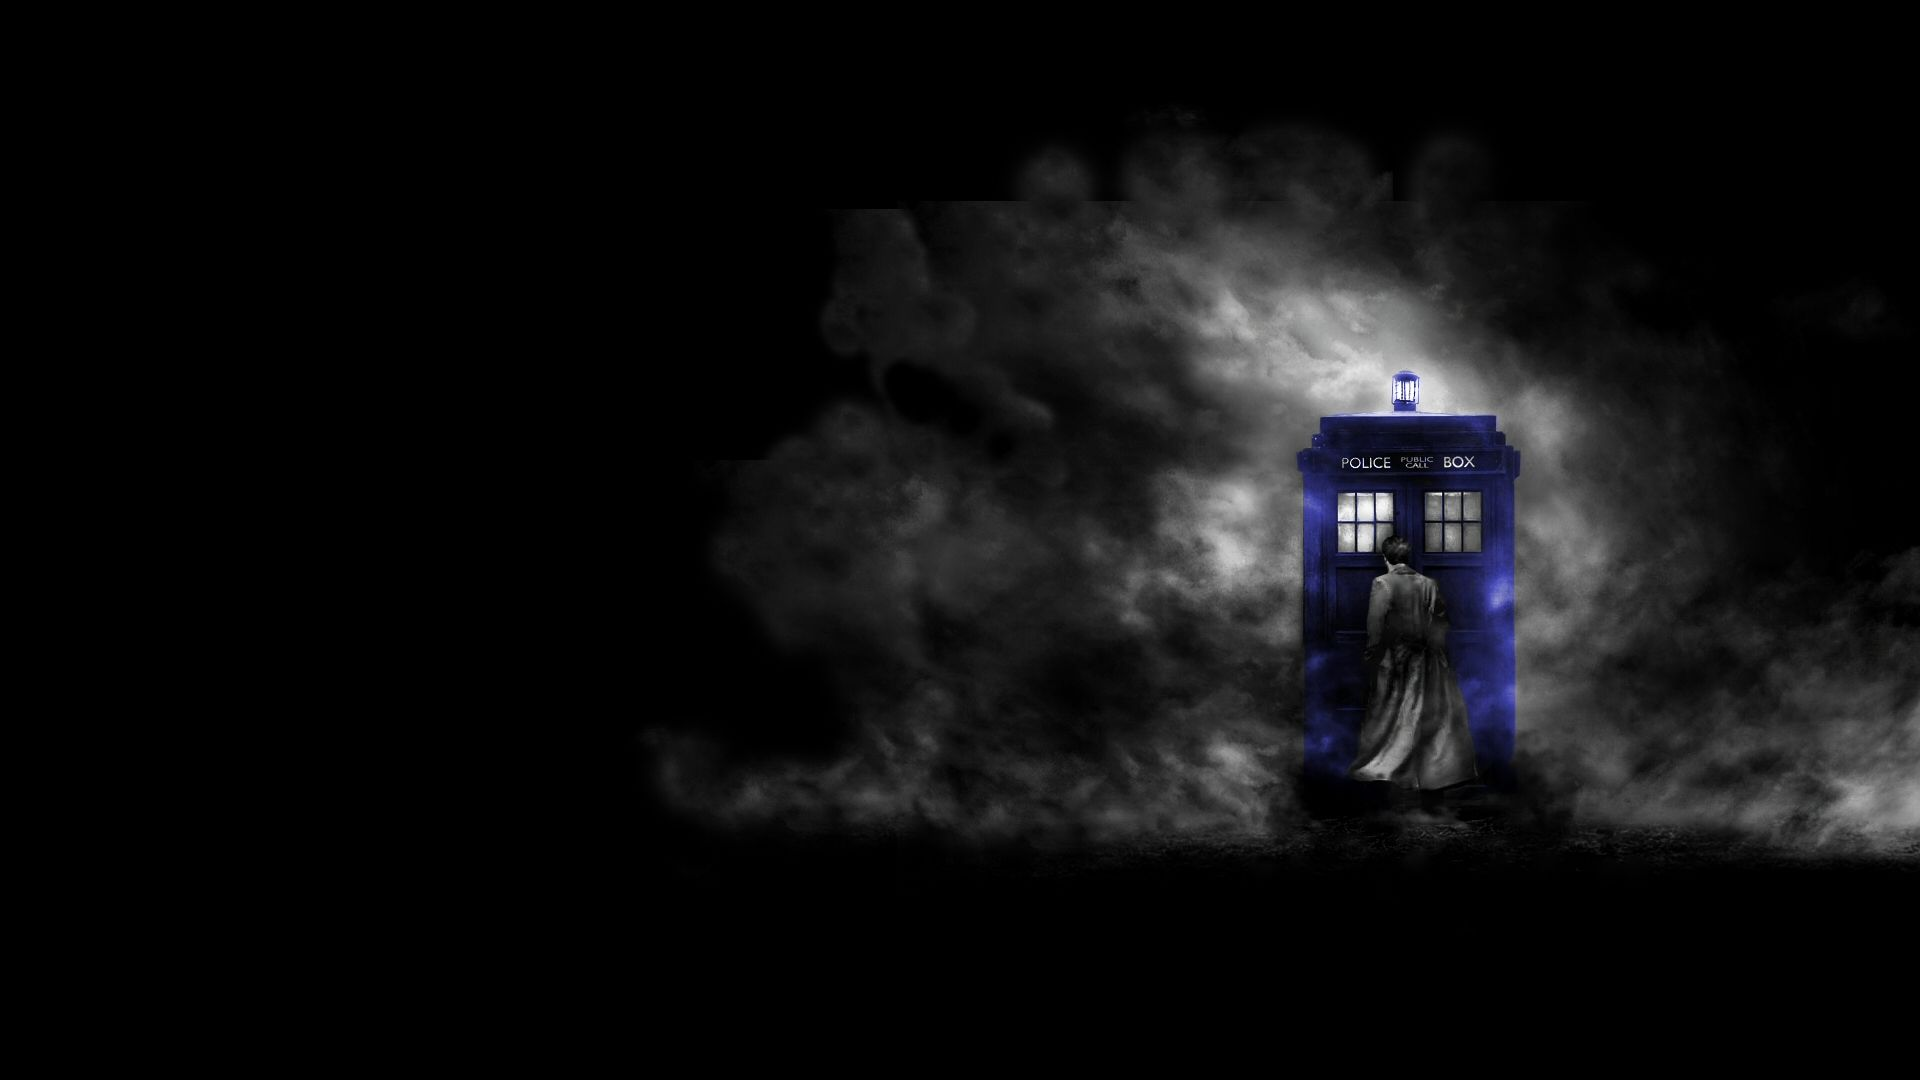 best images about doctor who dr who artworks 17 best images about doctor who dr who artworks and doctor who